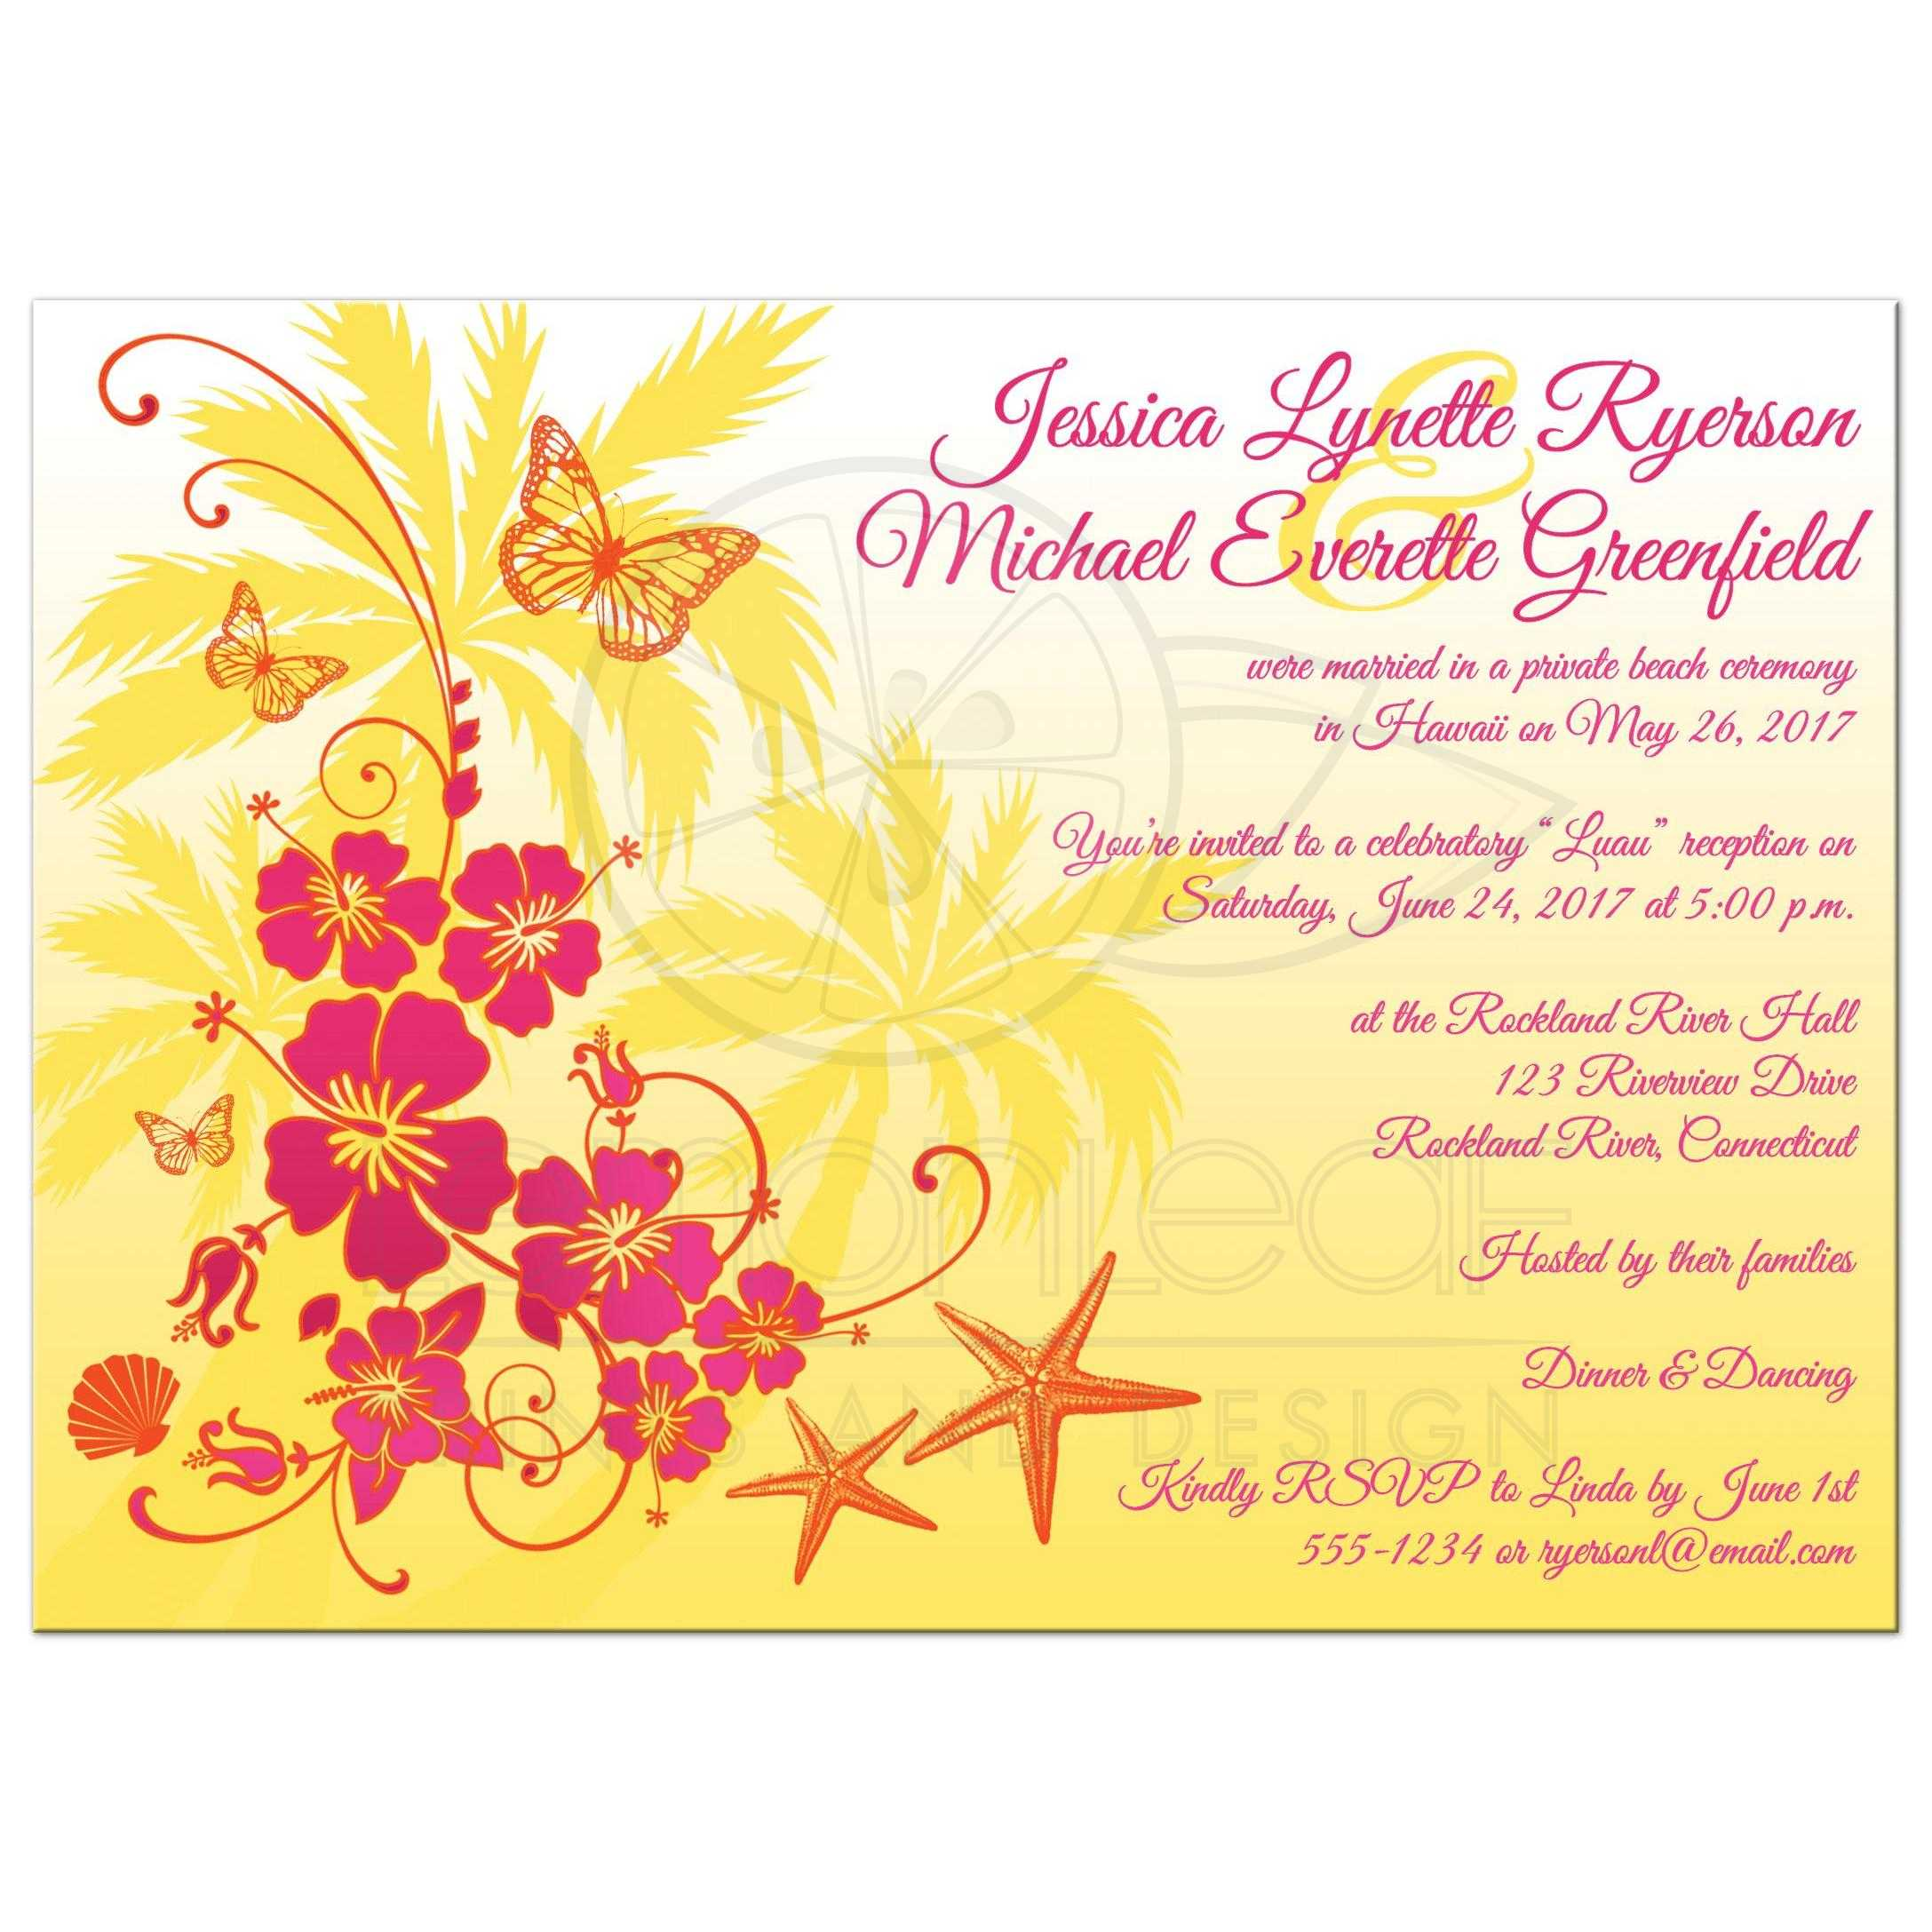 Great Yellow Fuchsia Pink Orange And White Tropical Beach Theme Wedding Invitations With: Hawaiian Beach Theme Wedding Invitation At Websimilar.org